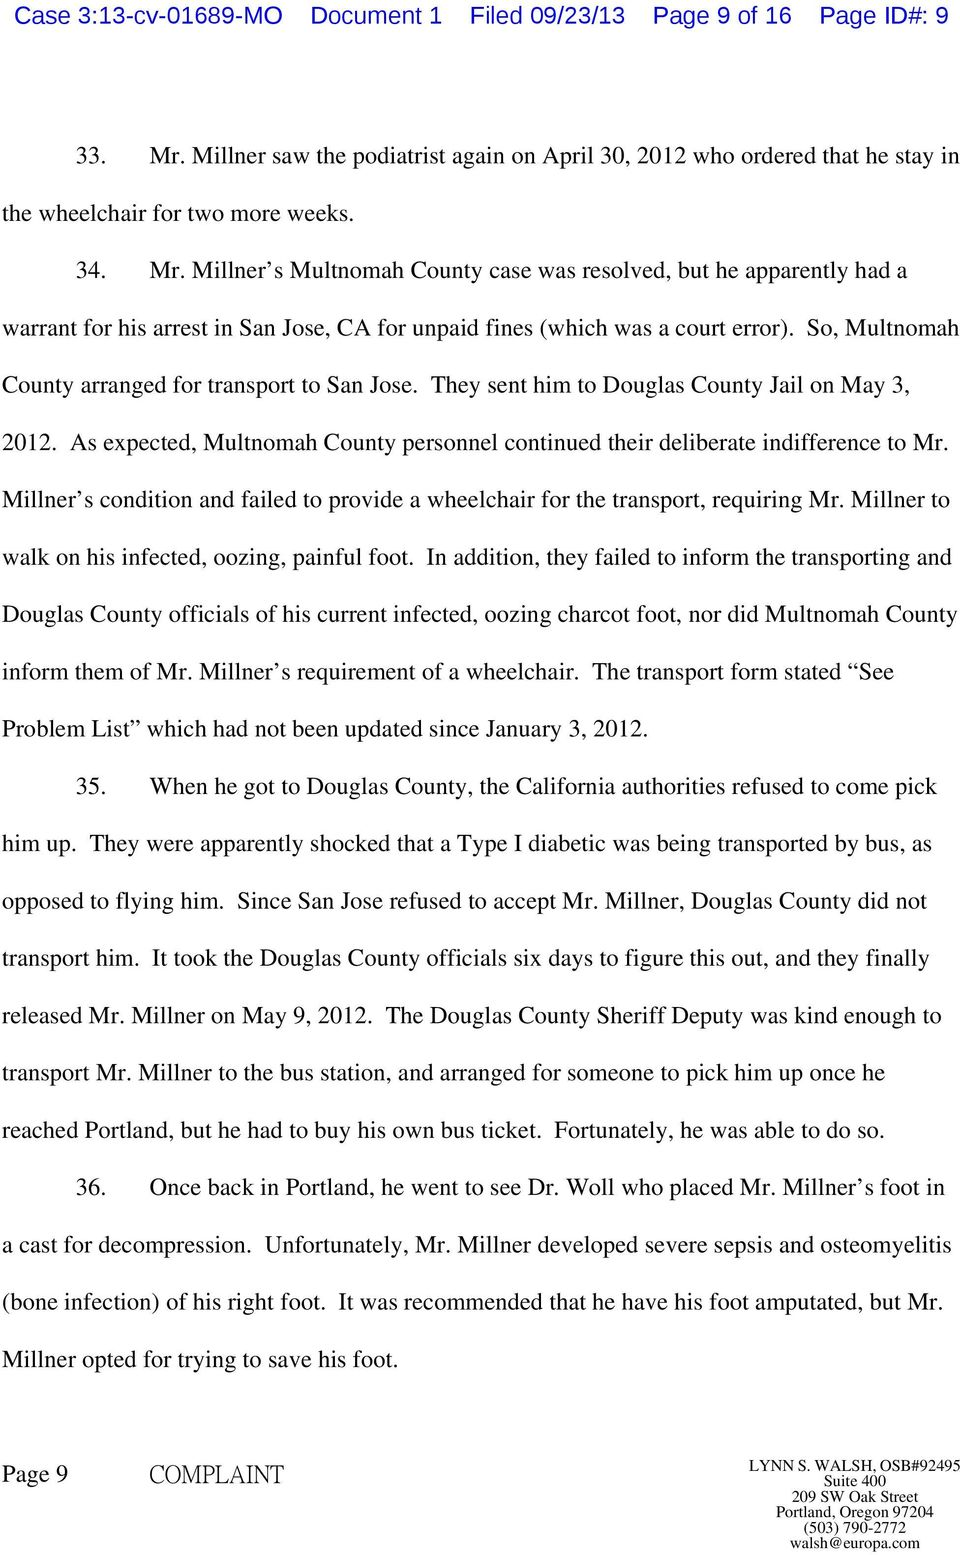 So, Multnomah County arranged for transport to San Jose. They sent him to Douglas County Jail on May 3, 2012. As expected, Multnomah County personnel continued their deliberate indifference to Mr.